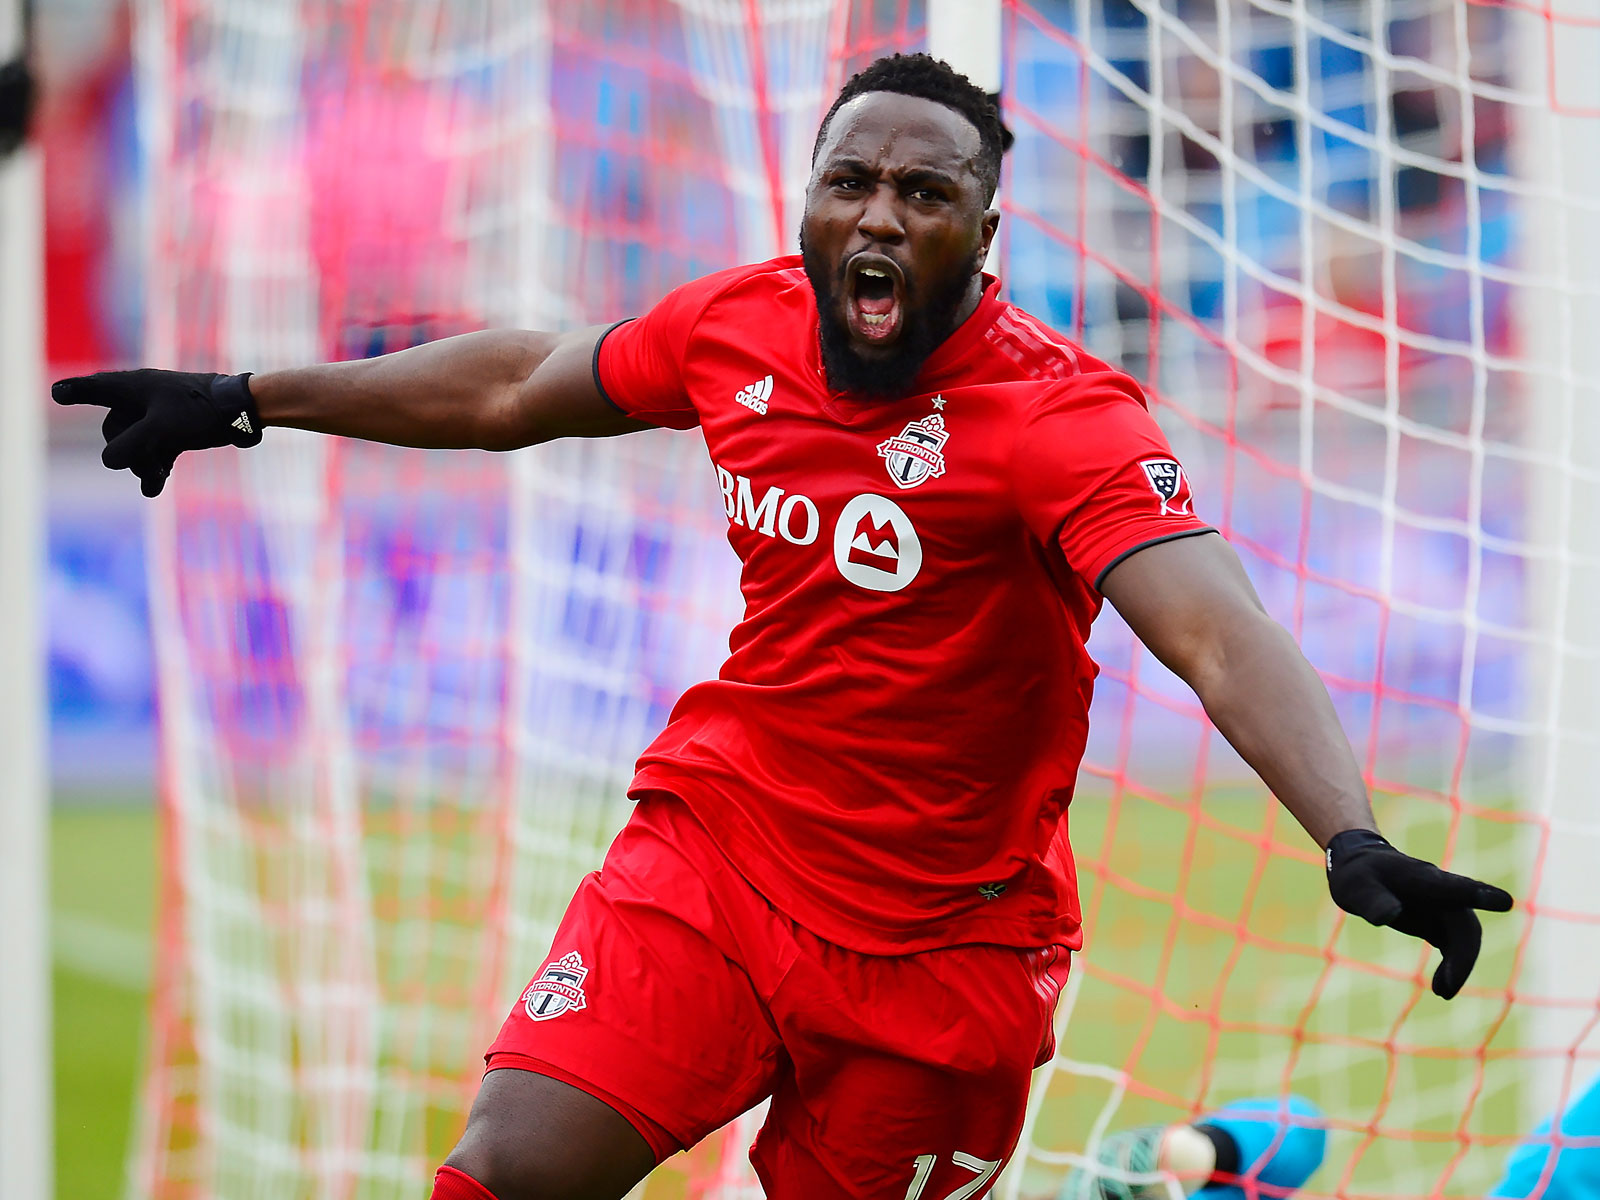 Jozy Altidore is off to a hot start to the 2019 MLS season